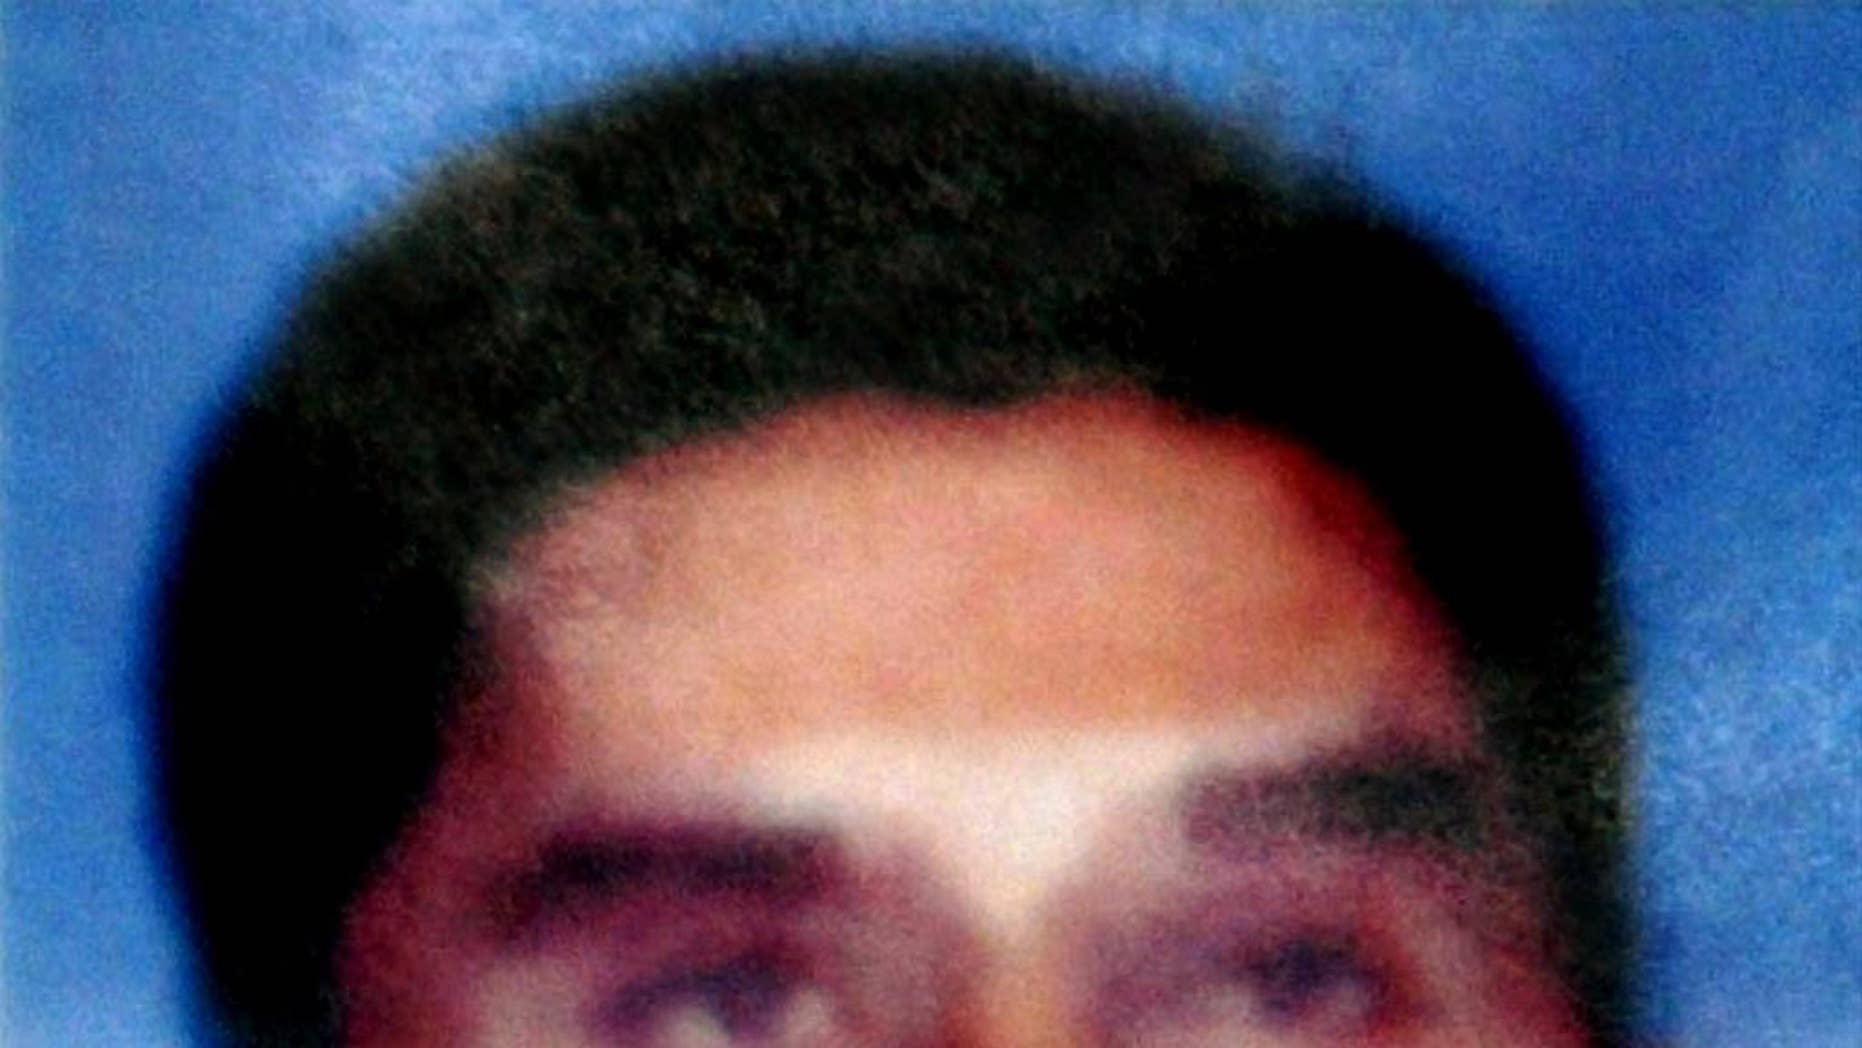 In this photo released by Indonesian National Police on Aug. 21, 2003, Southeast Asian terror mastermind Hambali is shown. Encep Nurjaman, who's known as Hambali, an Indonesian held for nearly 10 years at the U.S. military prison at Guantanamo Bay, Cuba, has appeared for the first time at a hearing called to determine whether he should remain in detention.  (Indonesian National Police via AP)